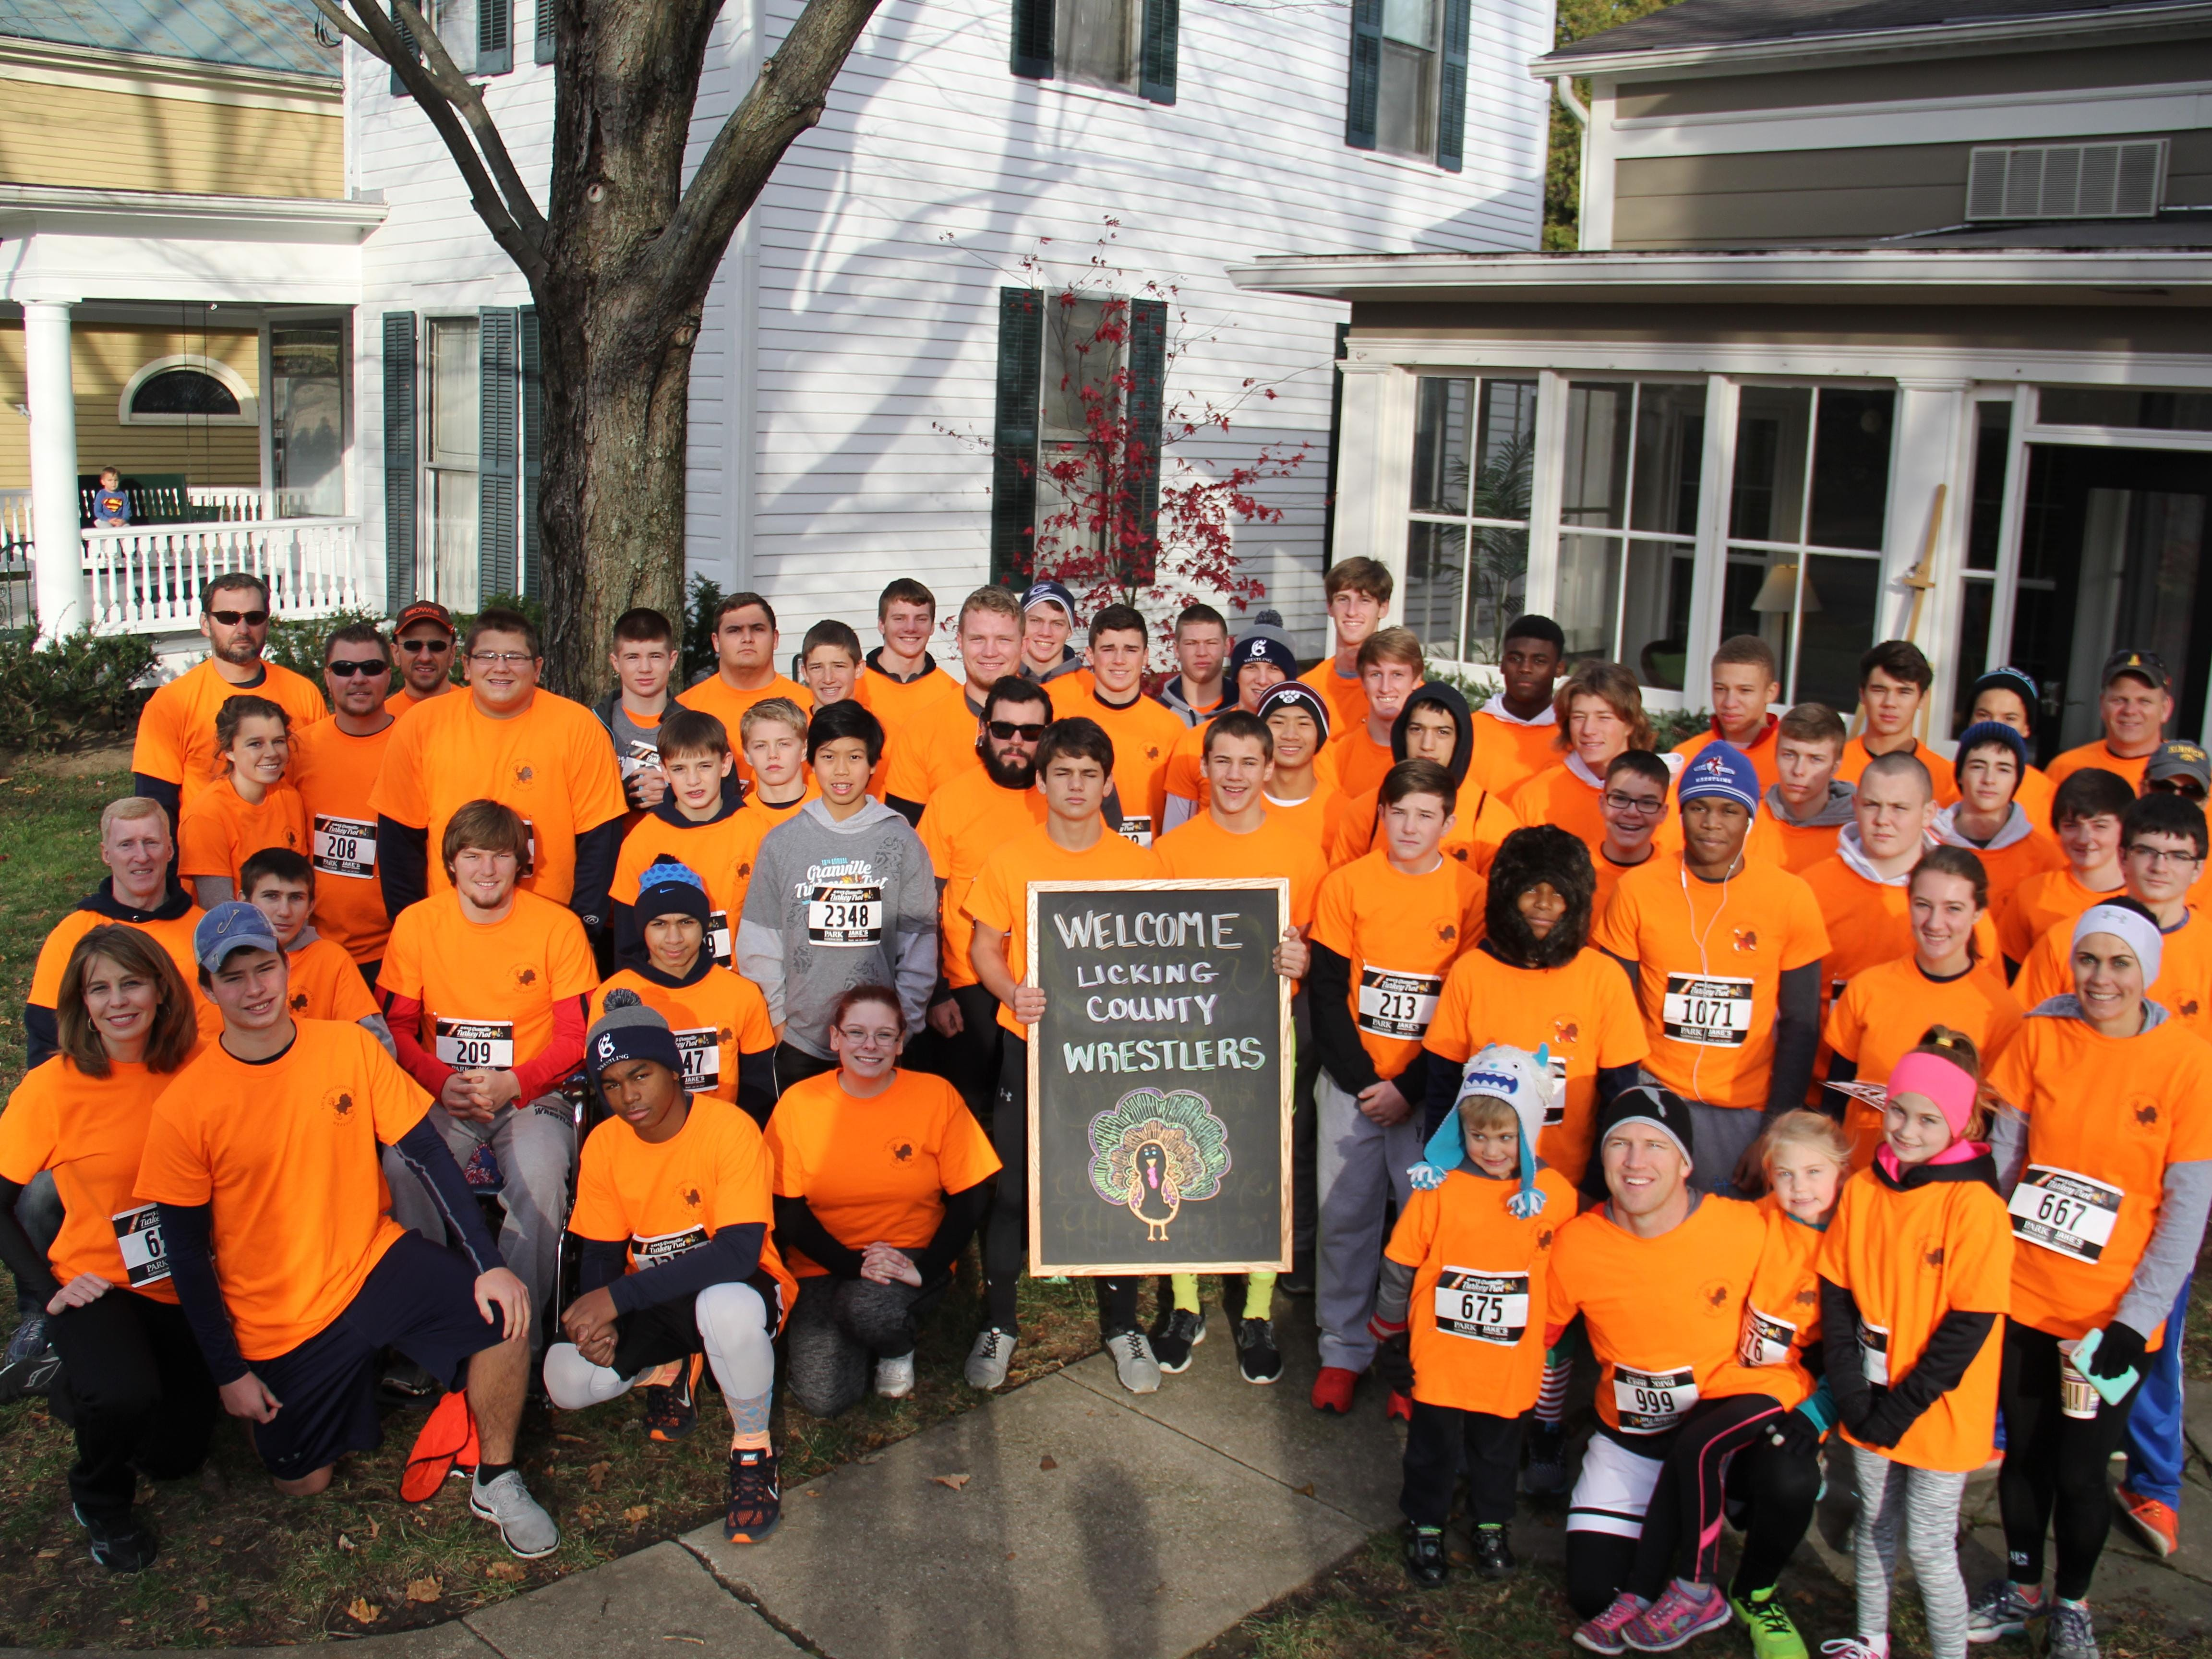 A group of wrestlers from Granville, Licking Valley and Newark high schools participated in the Granville Turkey Trot on Thursday to raise money for the Food Pantry of Licking County.